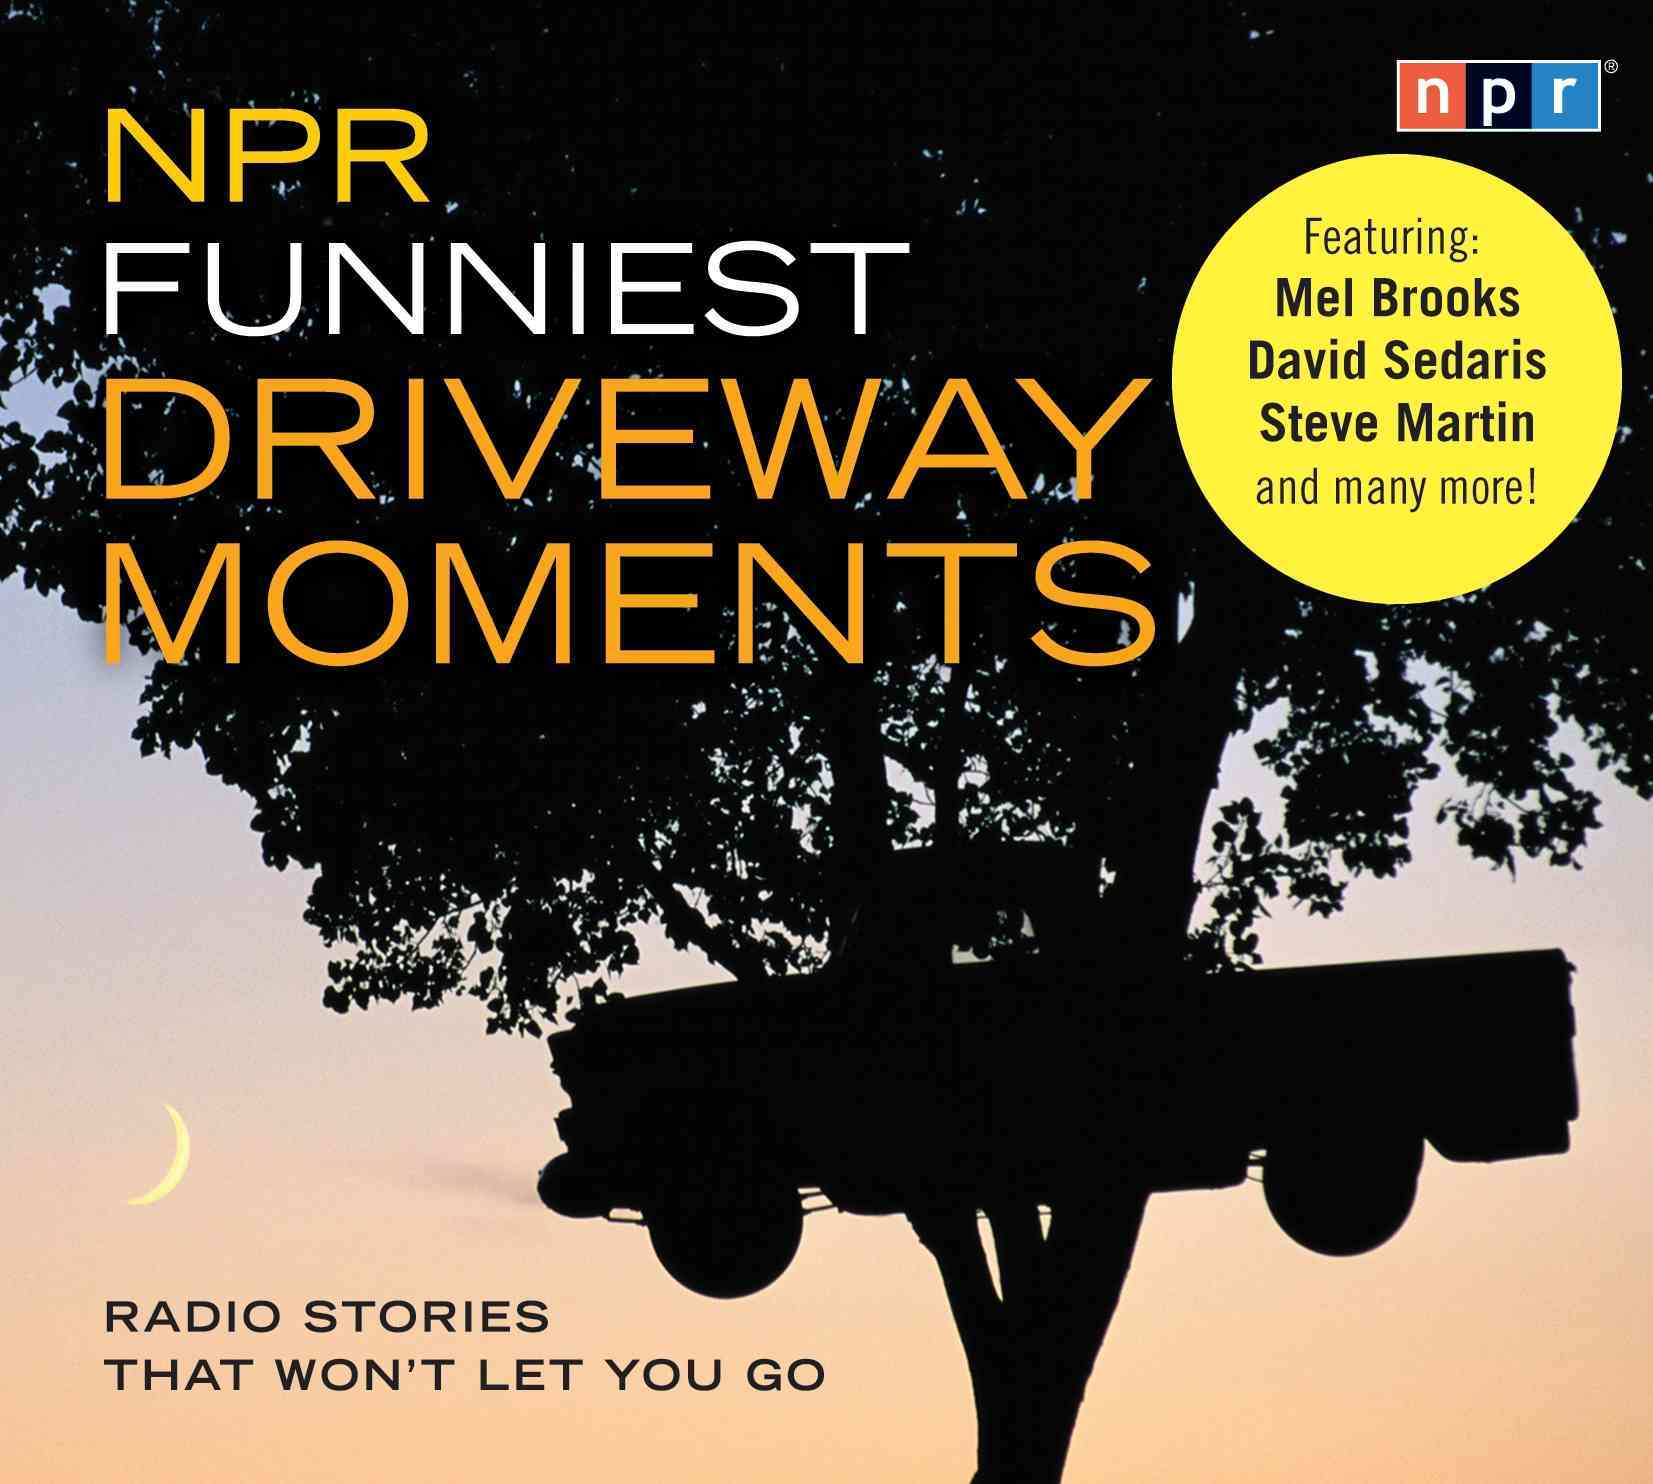 NPR Funniest Driveway Moments: Radio Stories That Won't Let You Go (CD-Audio)